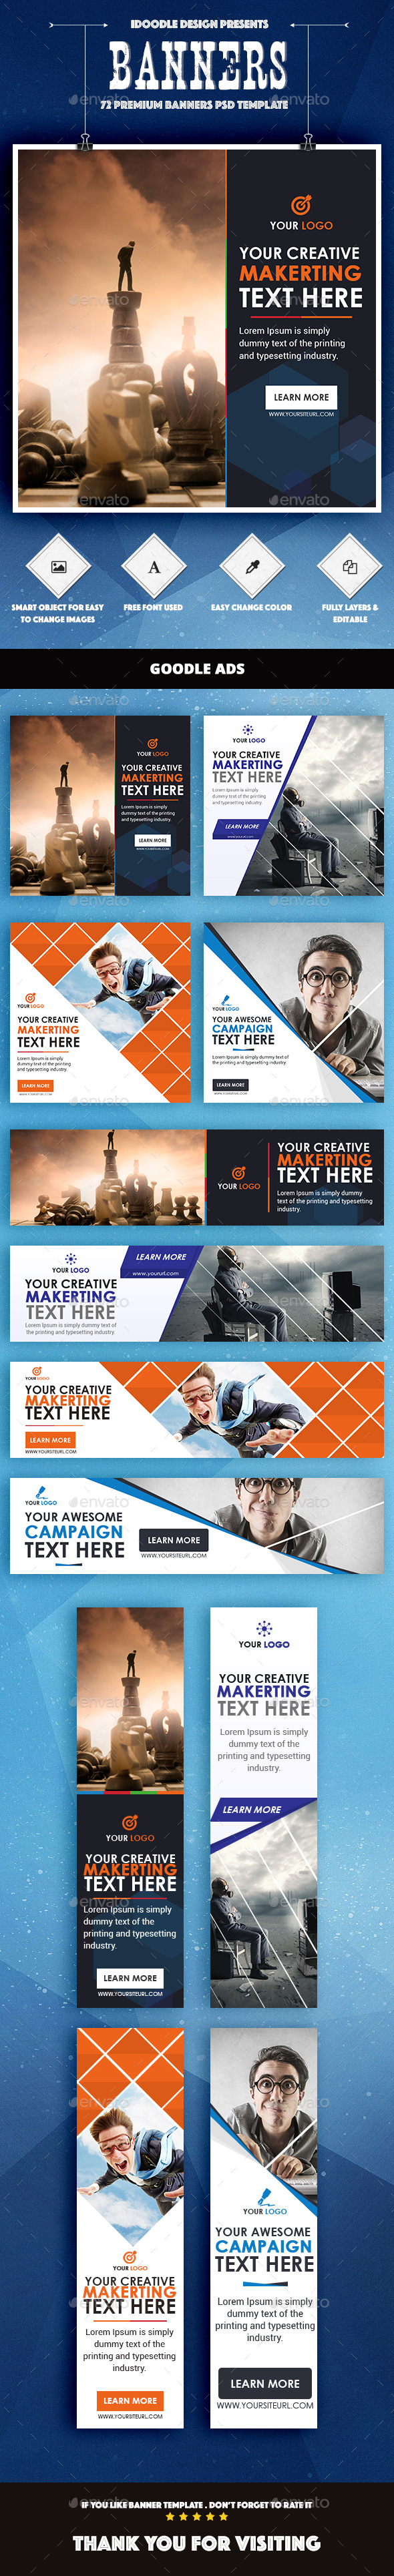 Bundle Multipurpose Banners Ad - Banners & Ads Web Elements